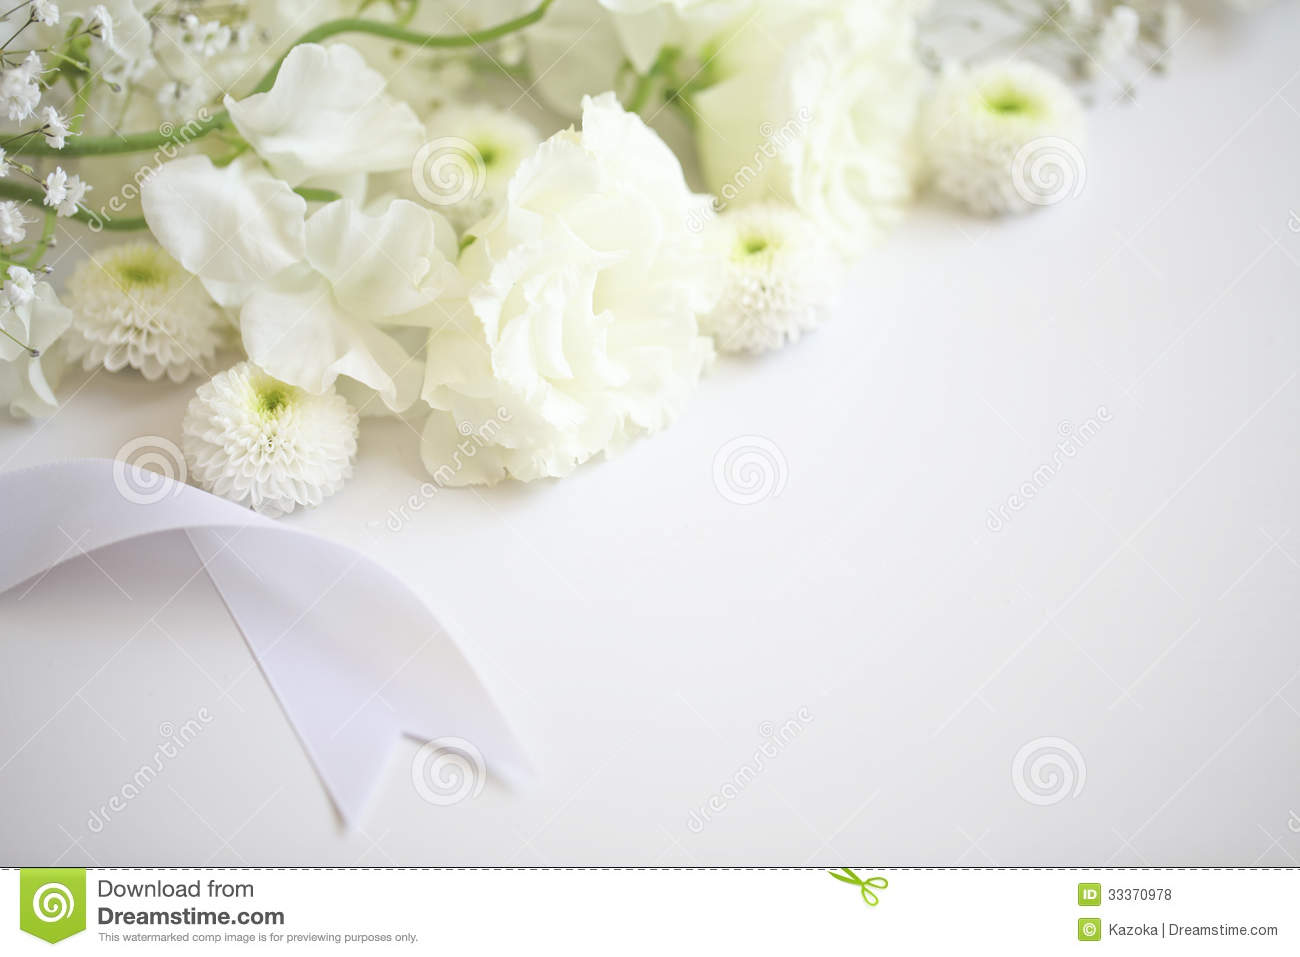 Funeral Flowers Stock Photo Image Of Fragile Leaves 33370978